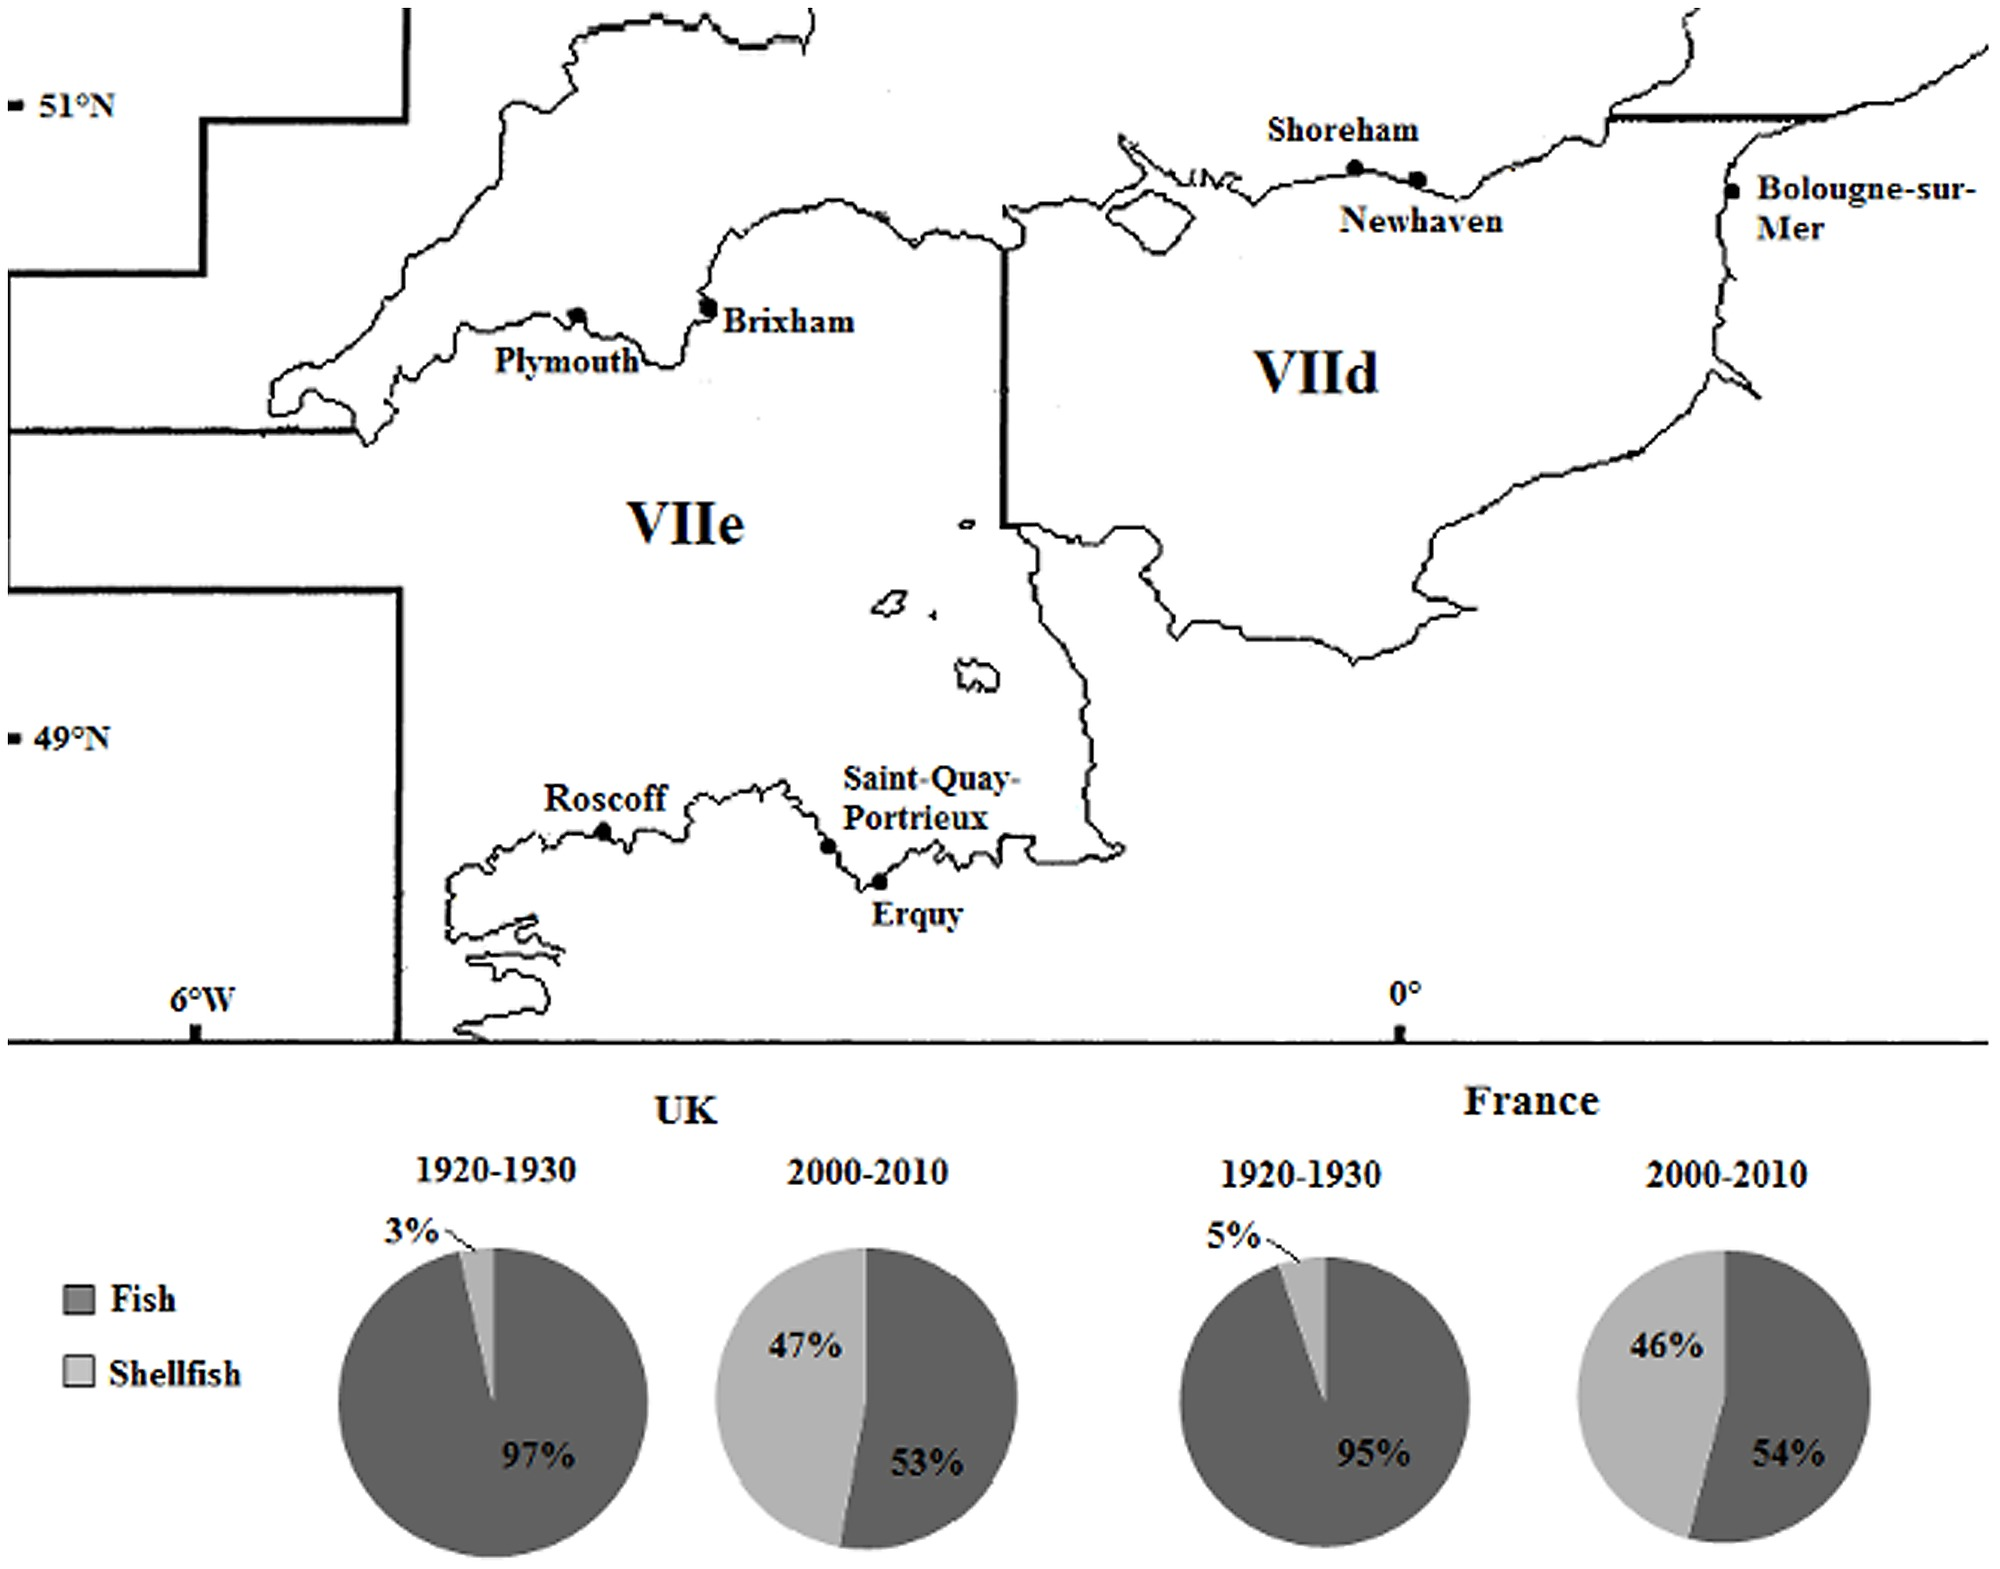 Major english channel fishing ports by landings value in 2010 ices major english channel fishing ports by landings value in 2010 ices areas viie and viid ccuart Image collections